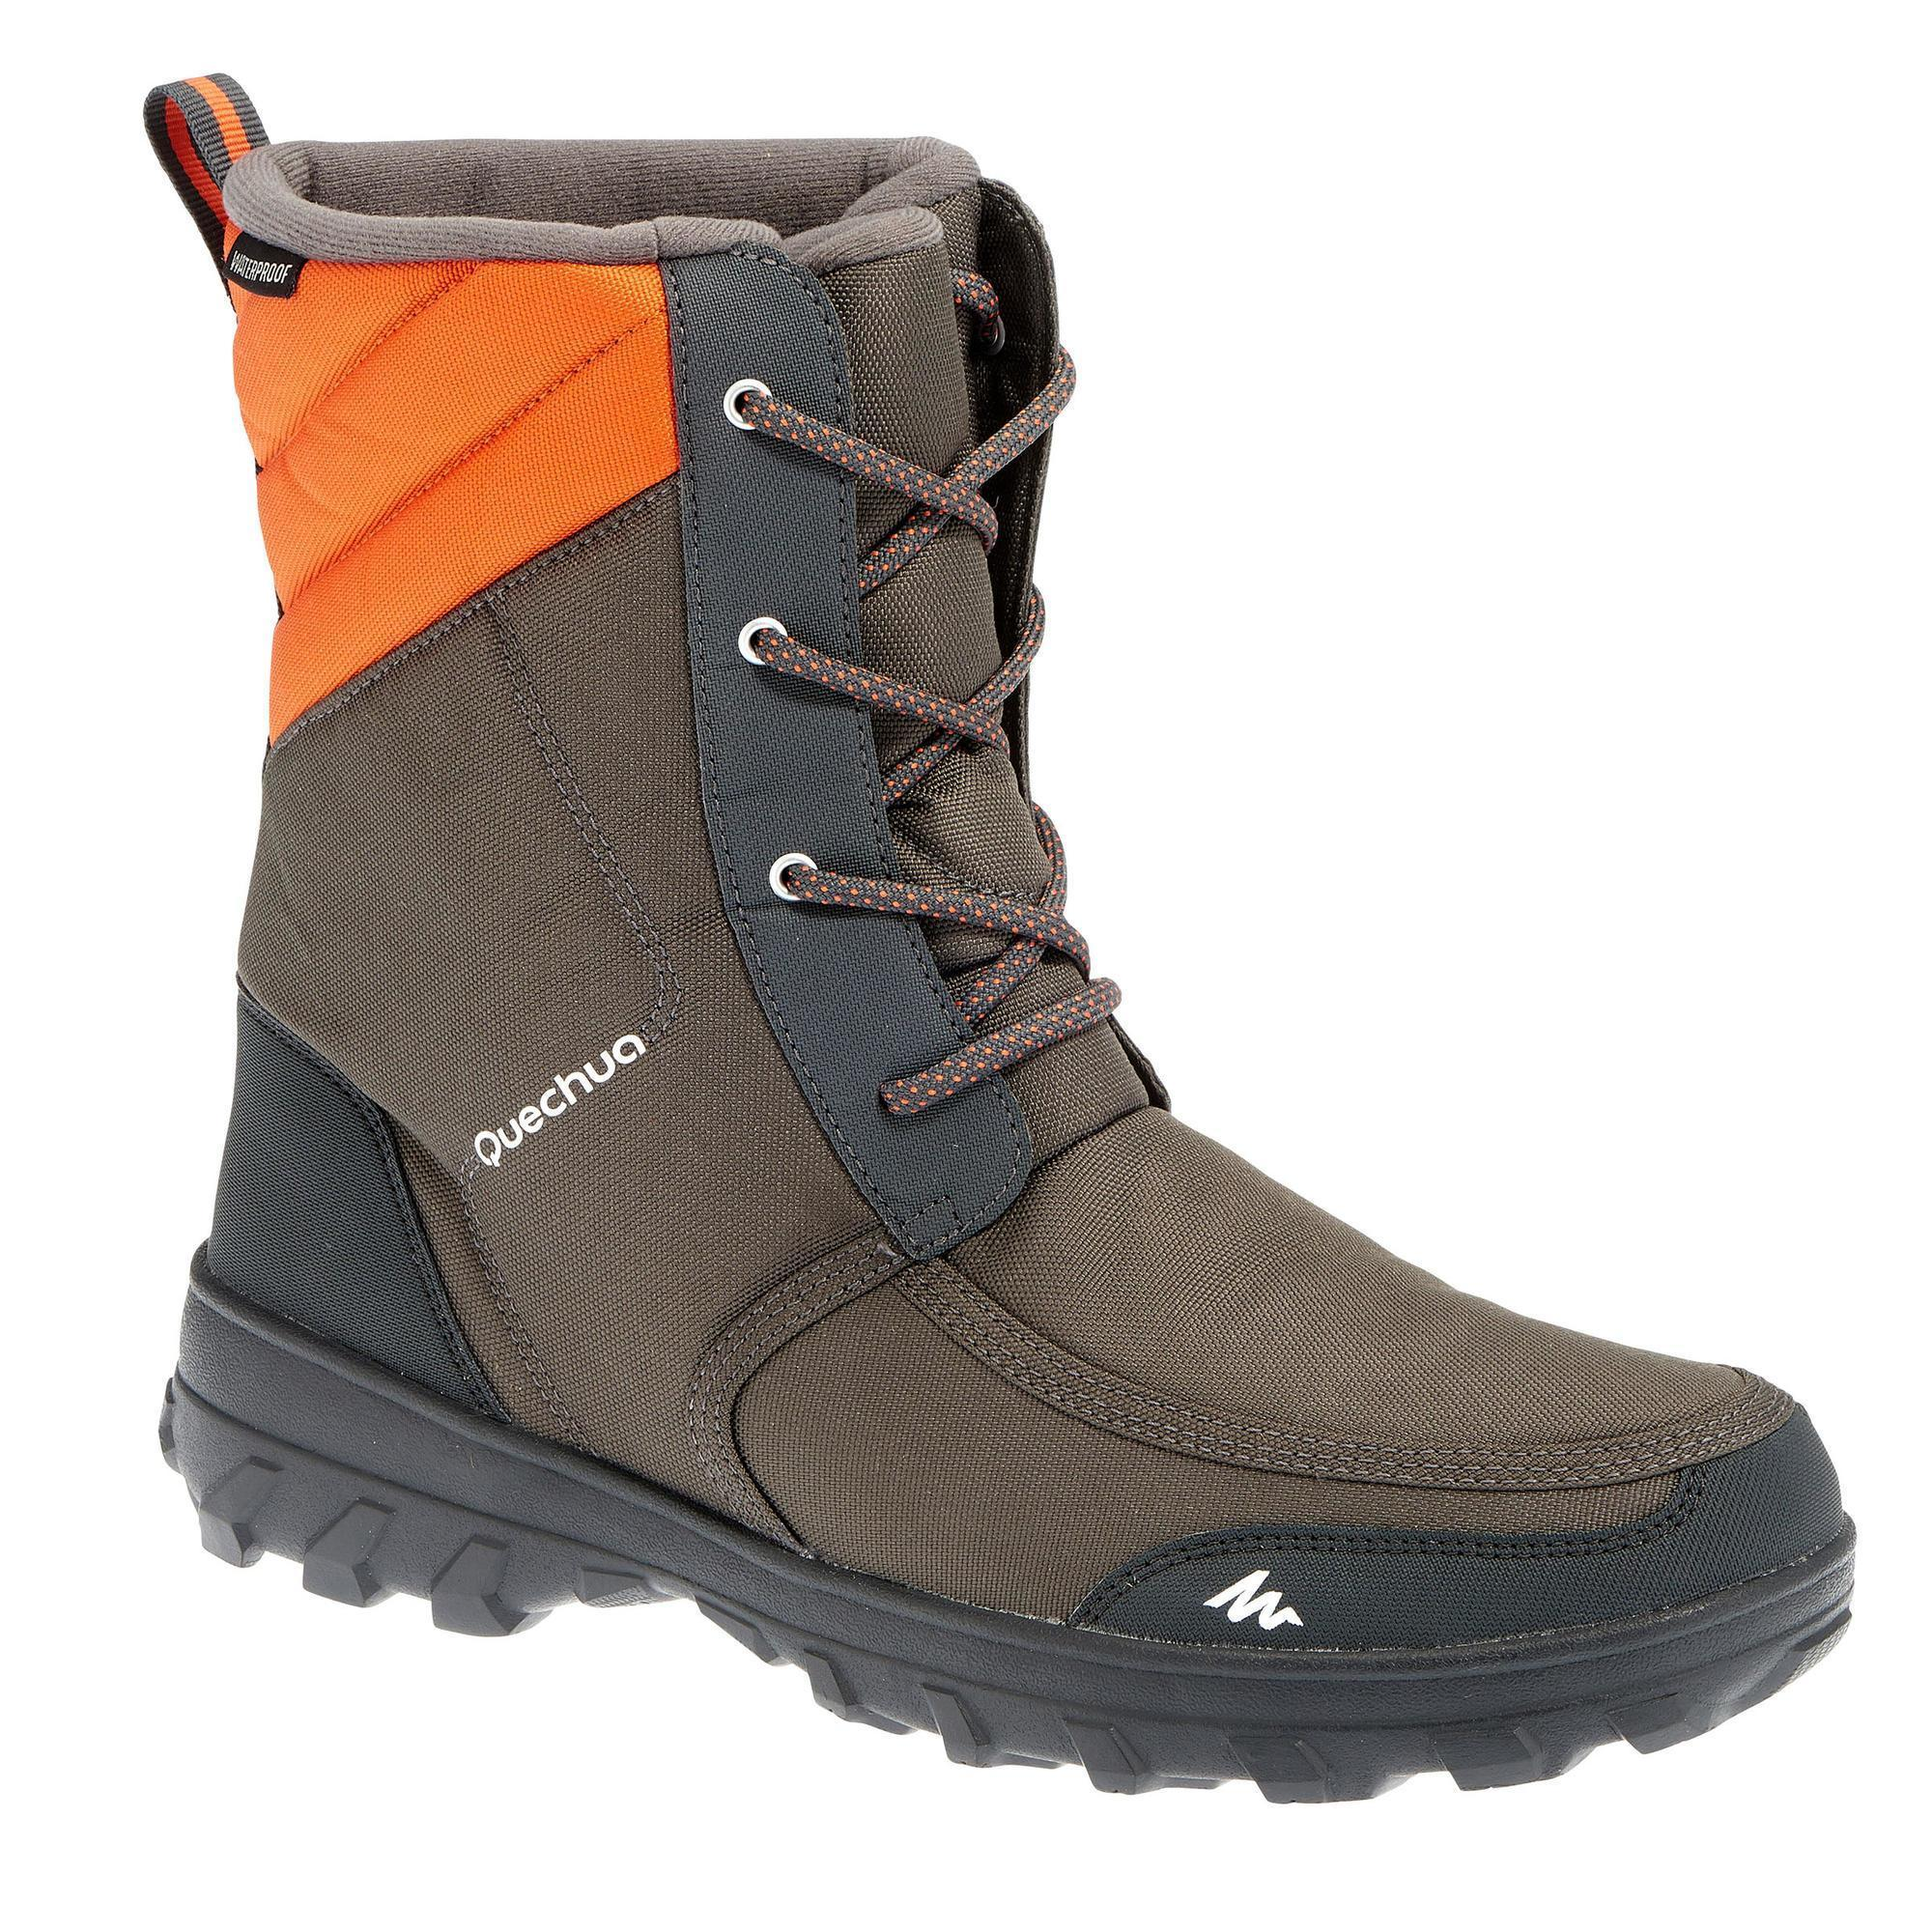 SH300 Men's Warm and Waterproof Snow Hiking Boots